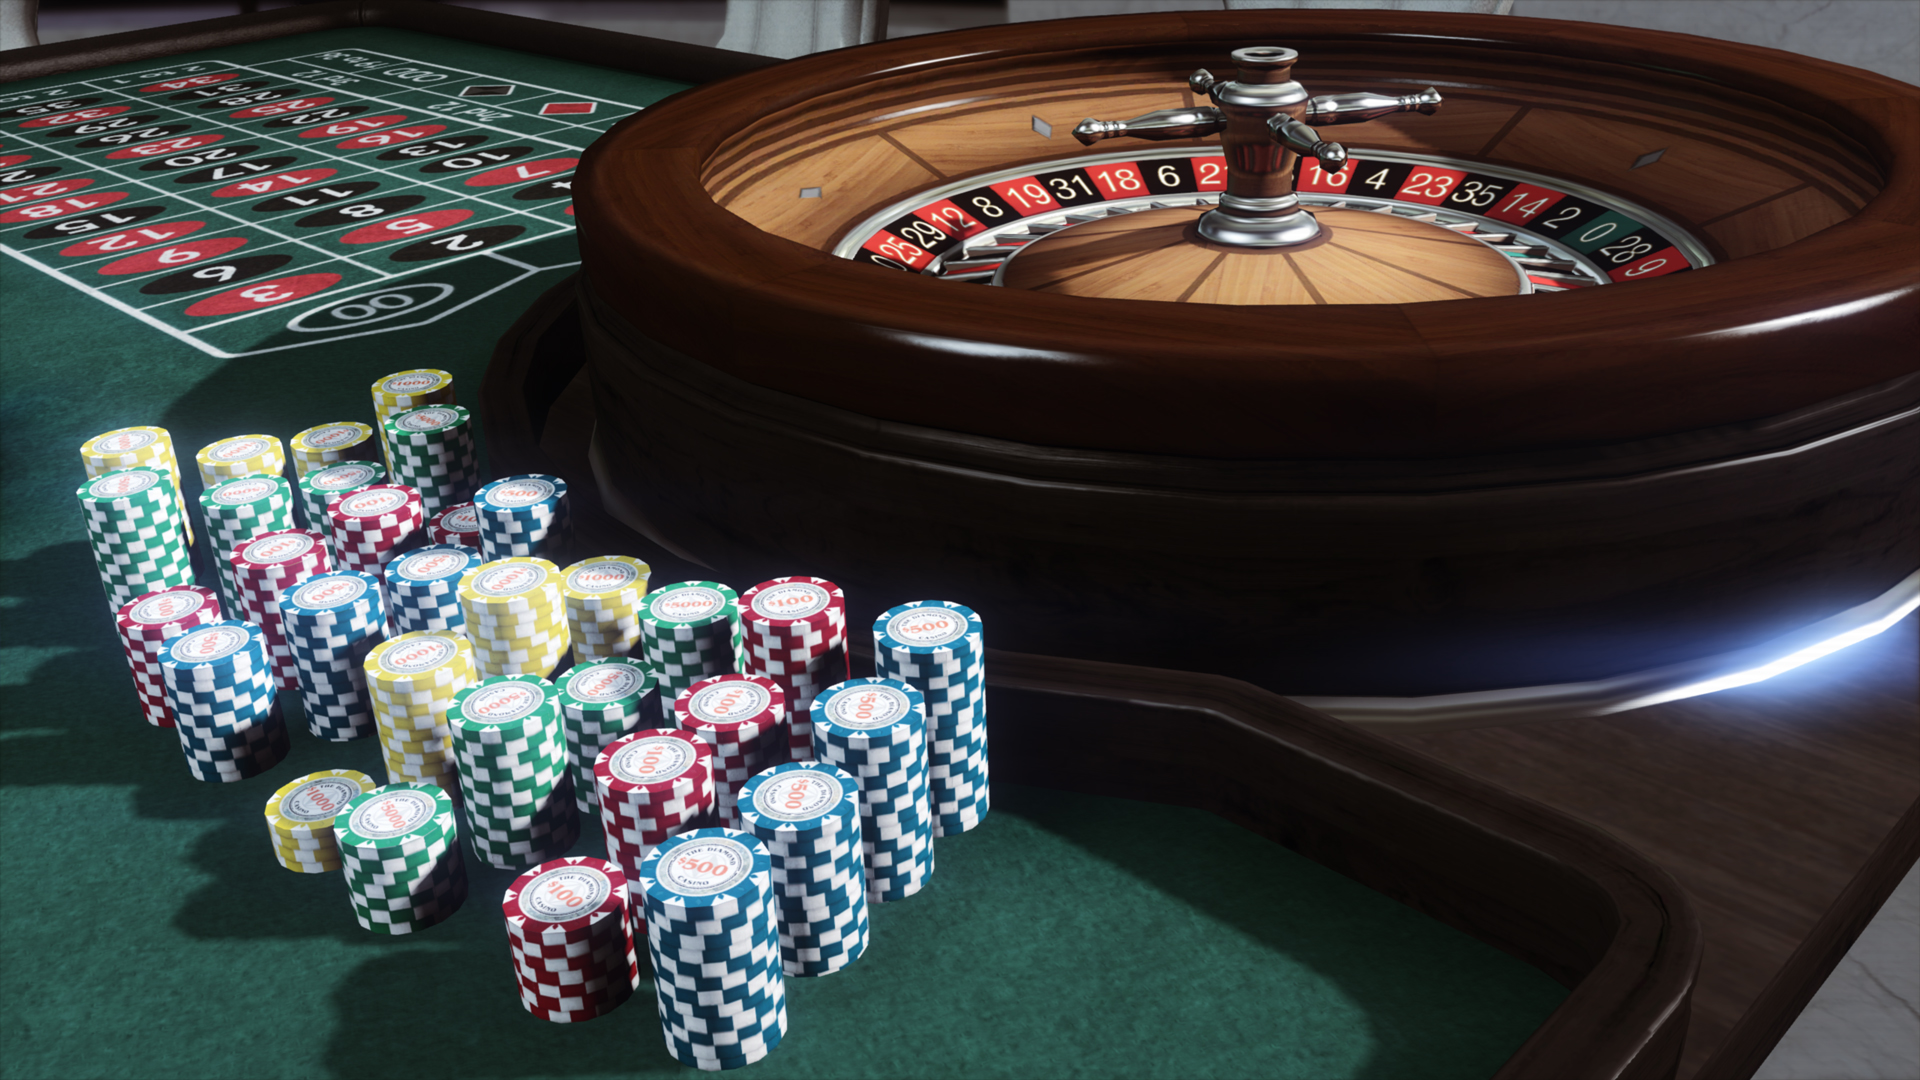 Try your luck in the online casinos by selecting your favourite game